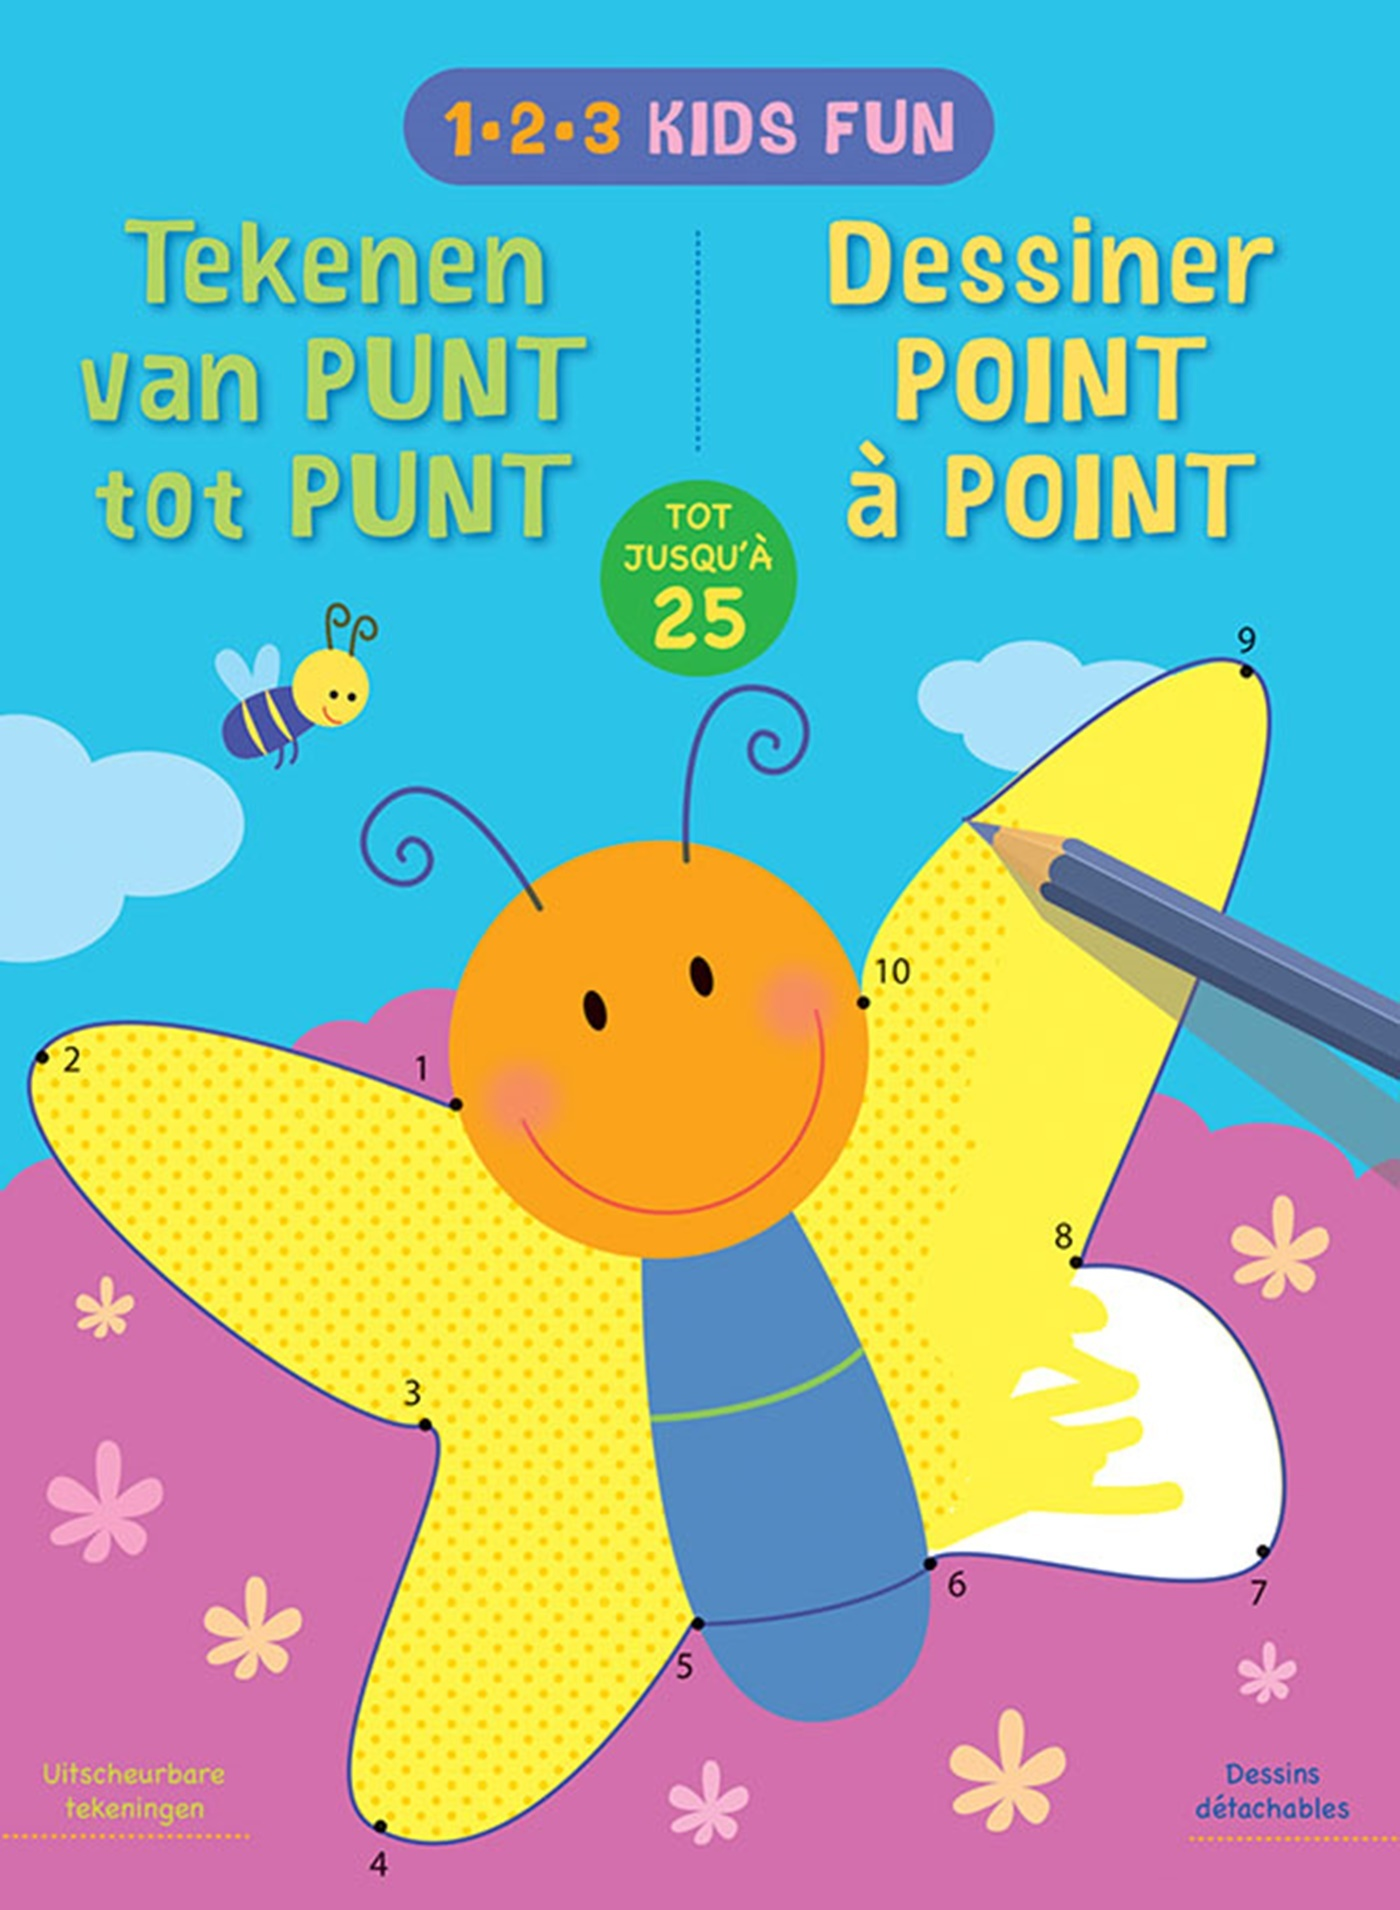 1-2-3 KIDS FUN - DESSINER POINT A POINT JUSQU'A 25